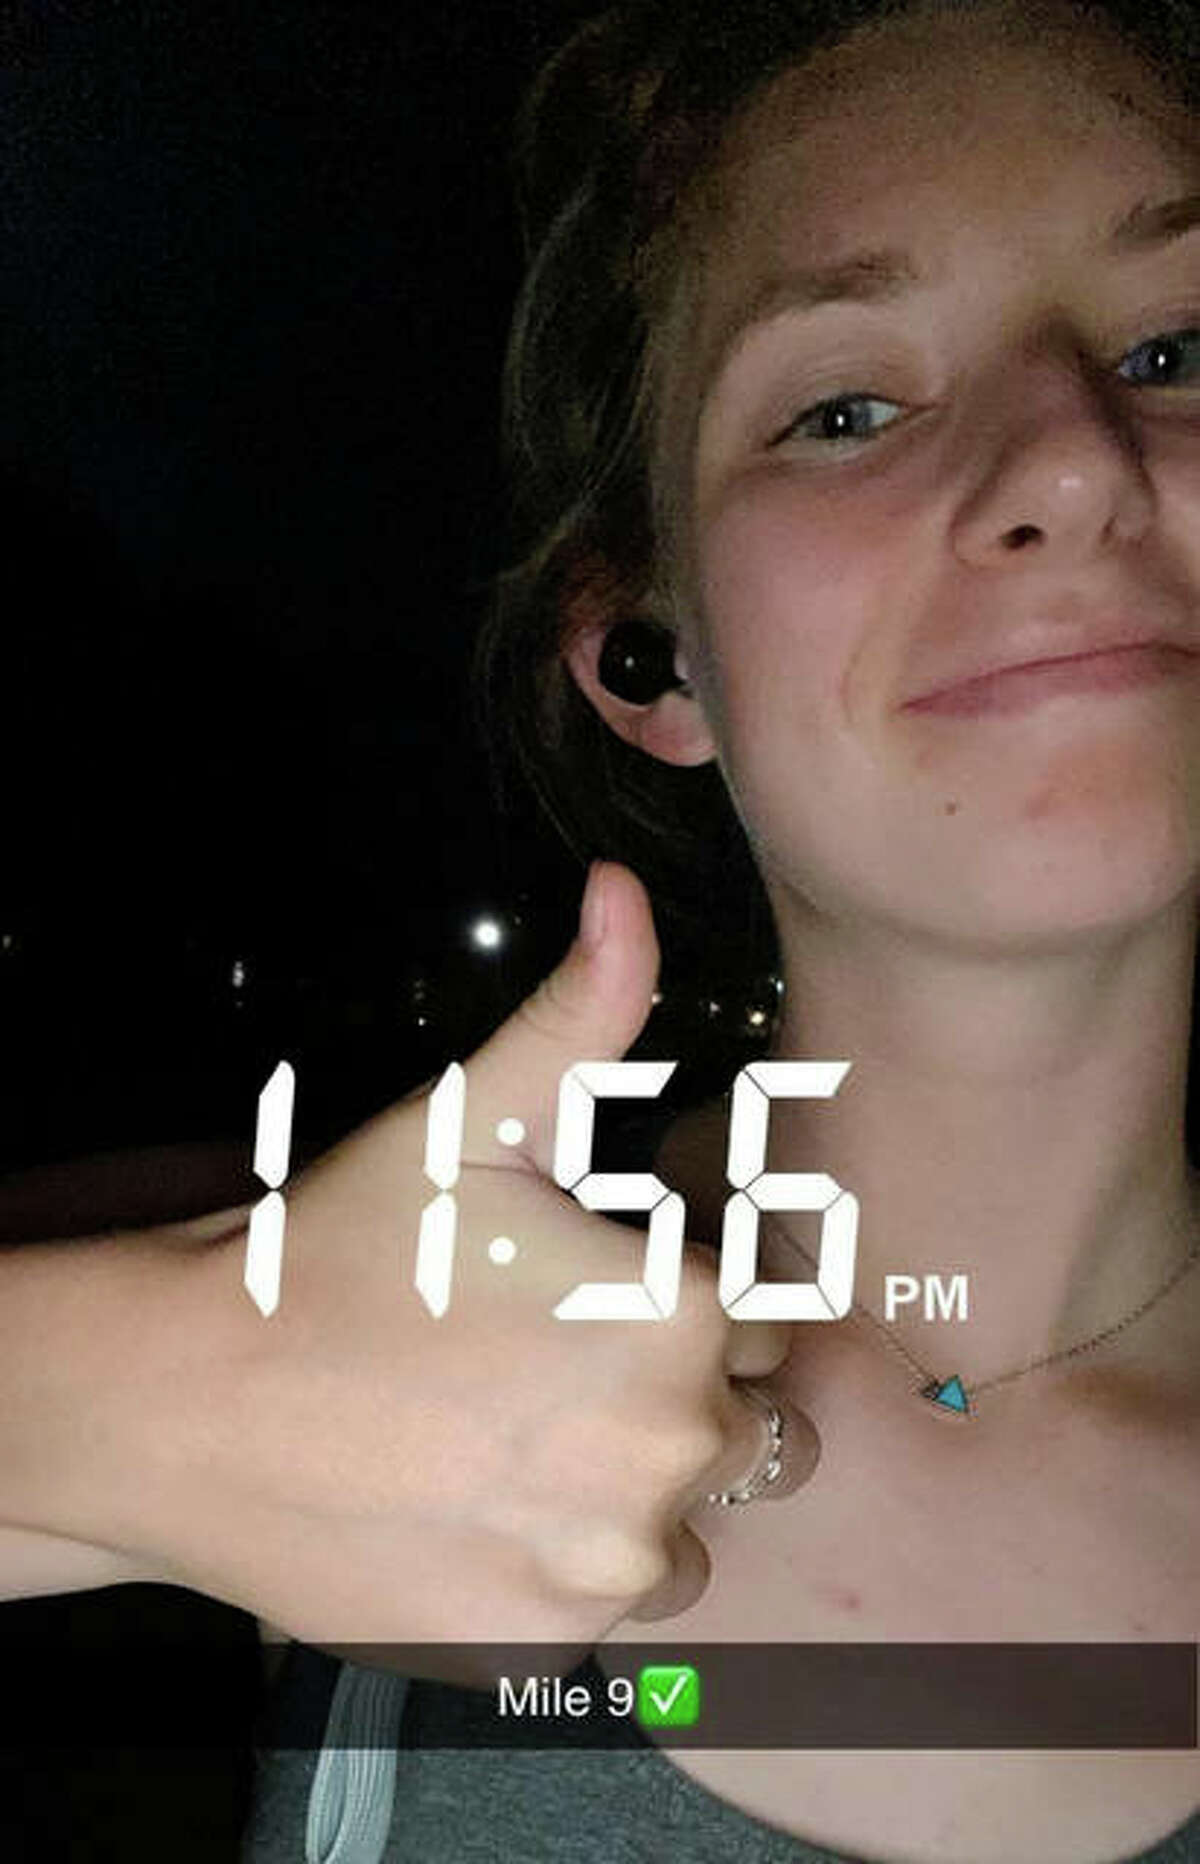 Wallace gives a thumbs up on her Snapchat after finishing mile nine.